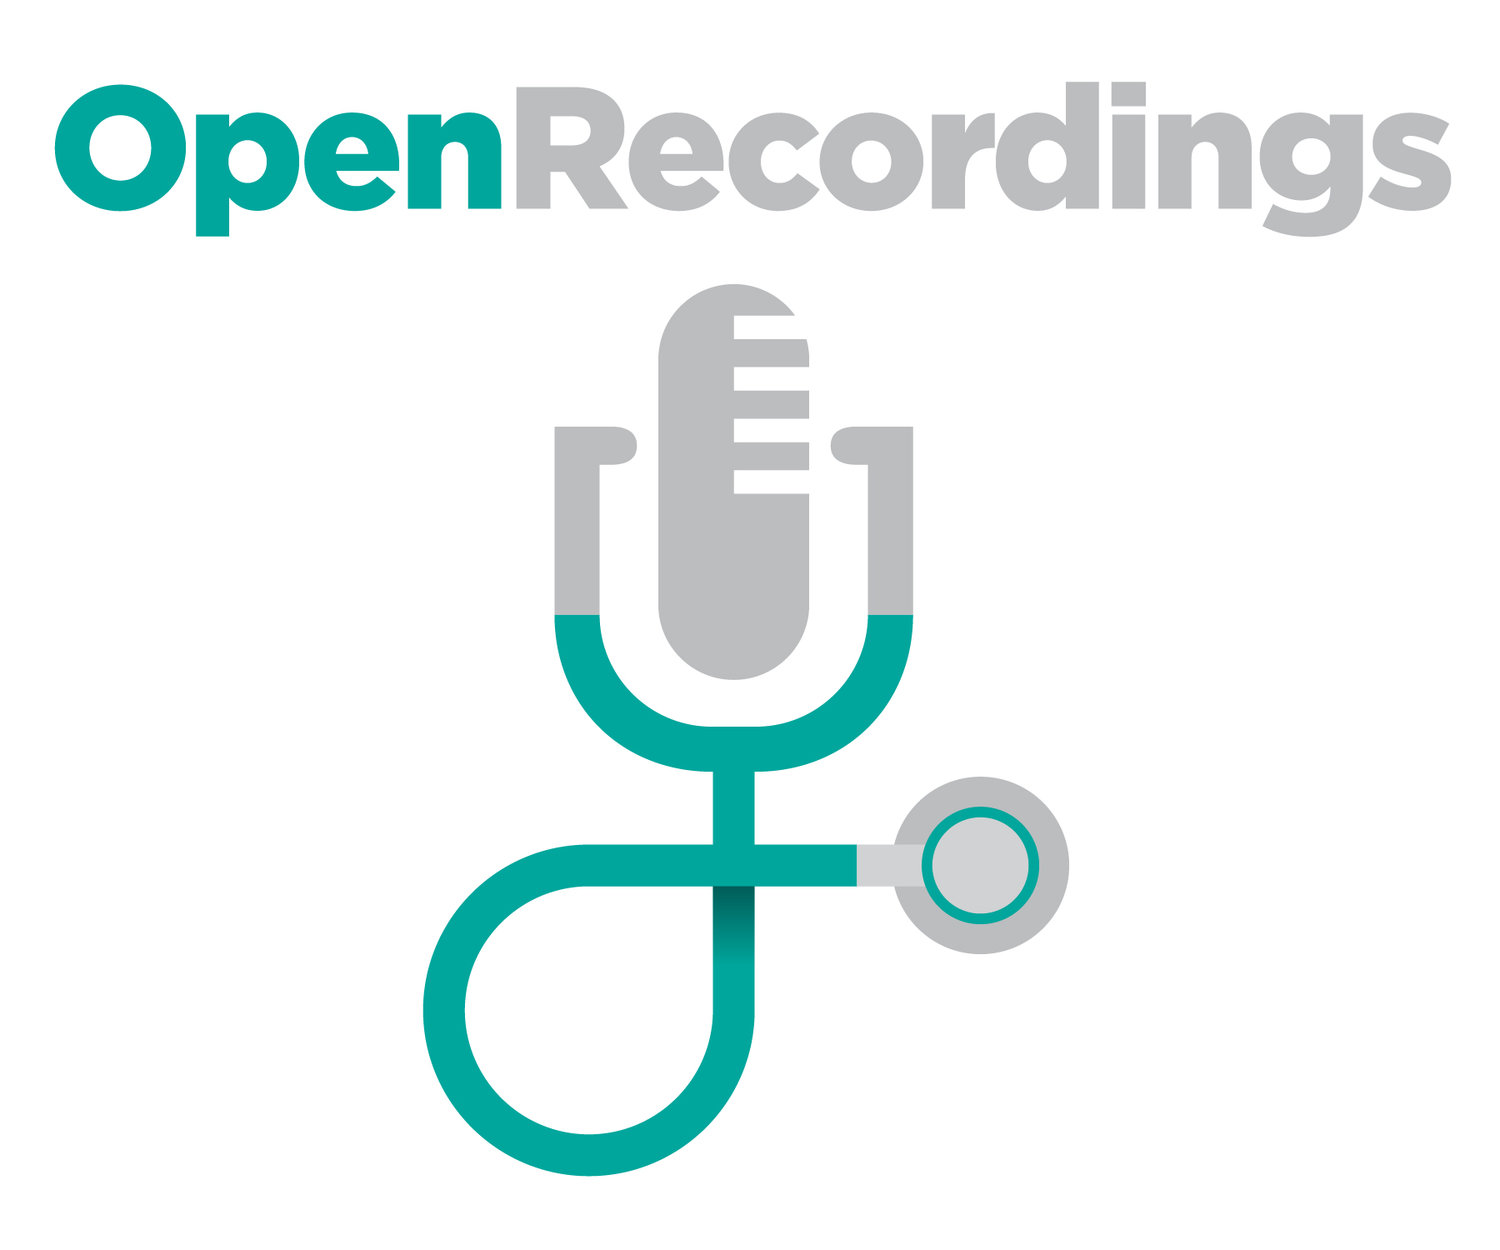 www.openrecordings.org